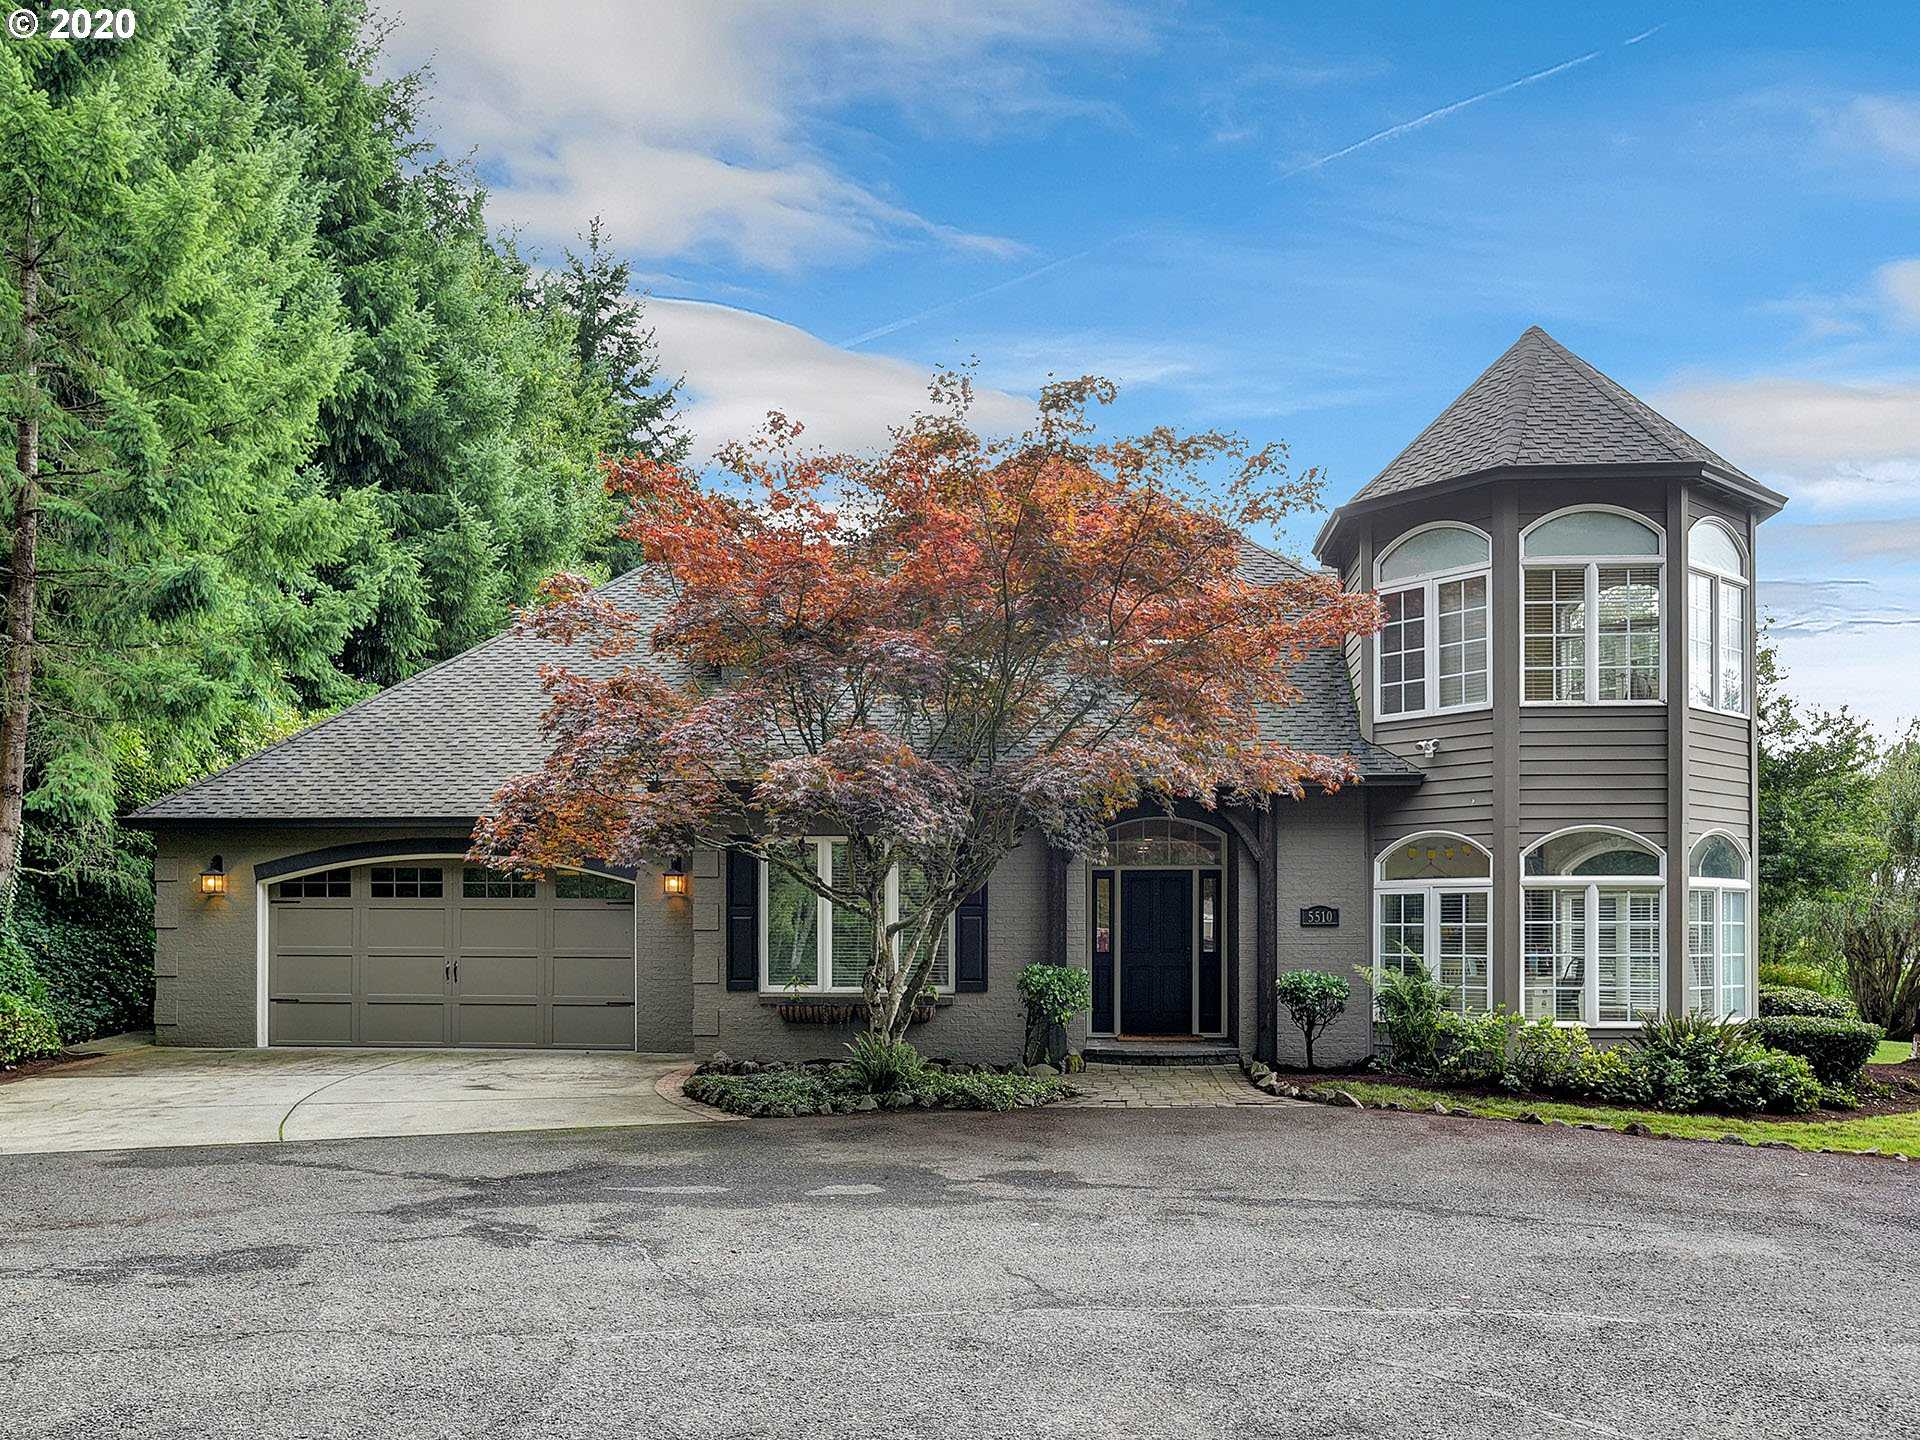 $995,000 - 5Br/3Ba -  for Sale in Tualatin